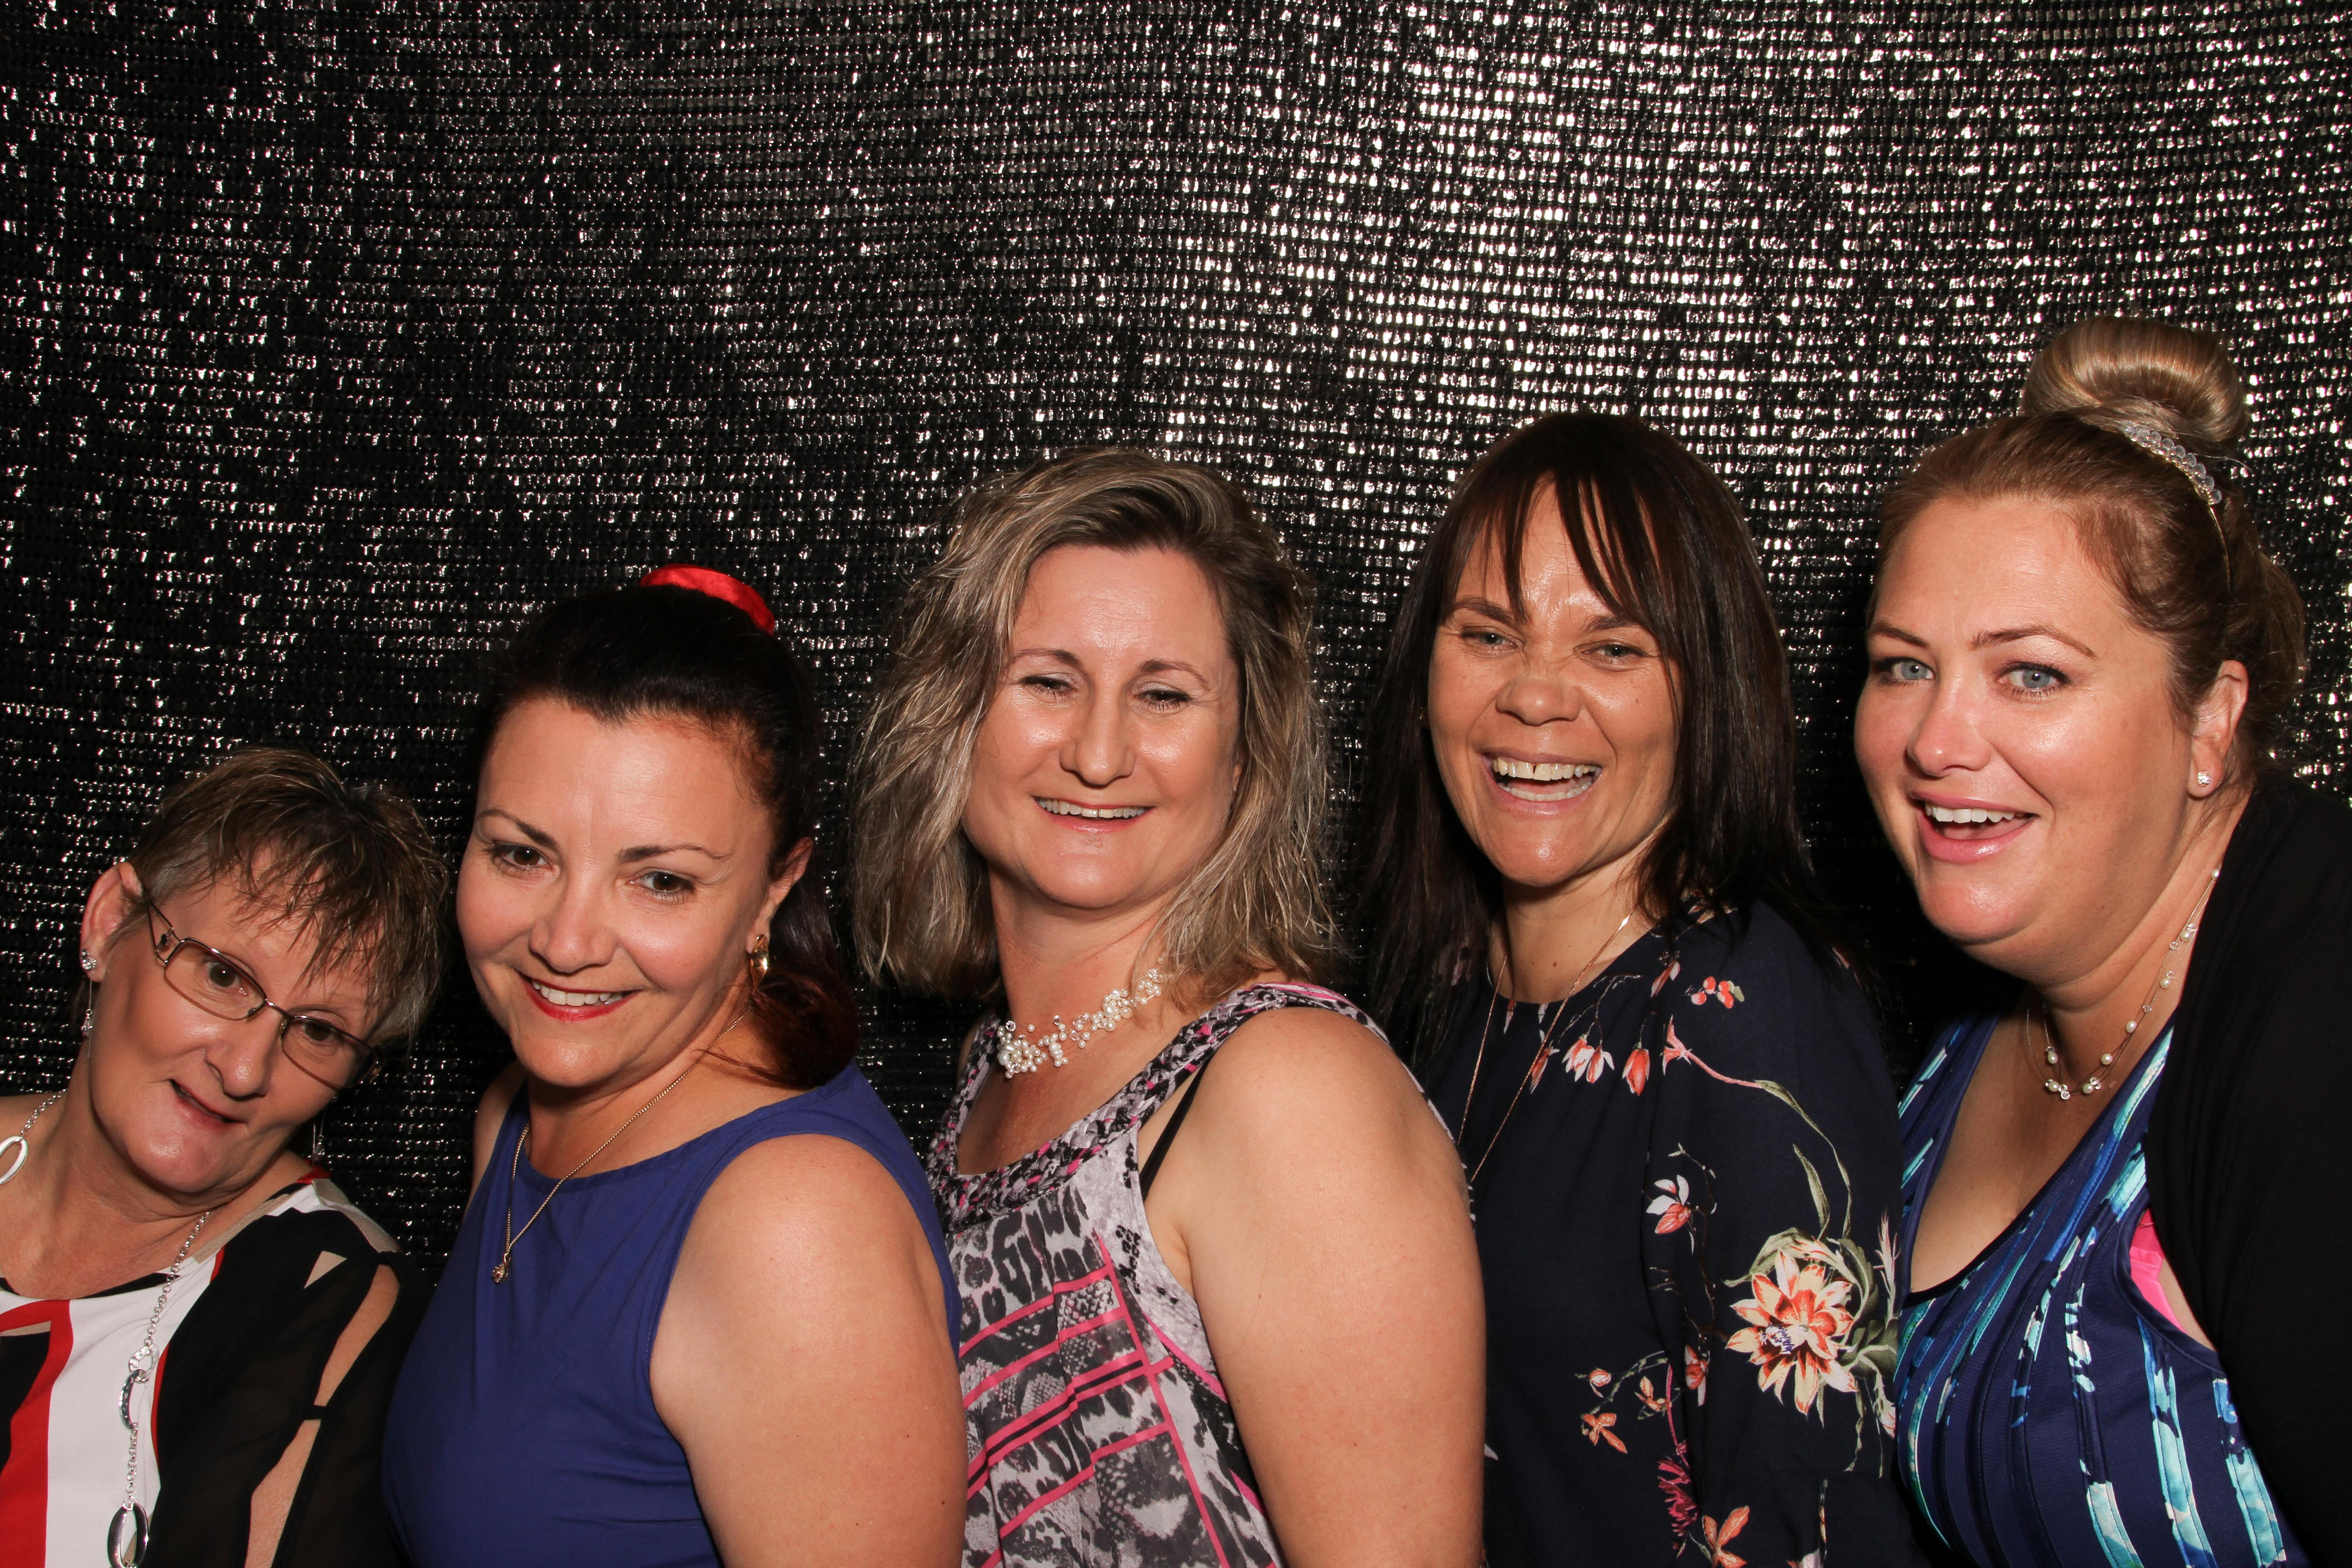 Tigers High Tea Photobooth - Serene Bedlam Photography & Photobooh